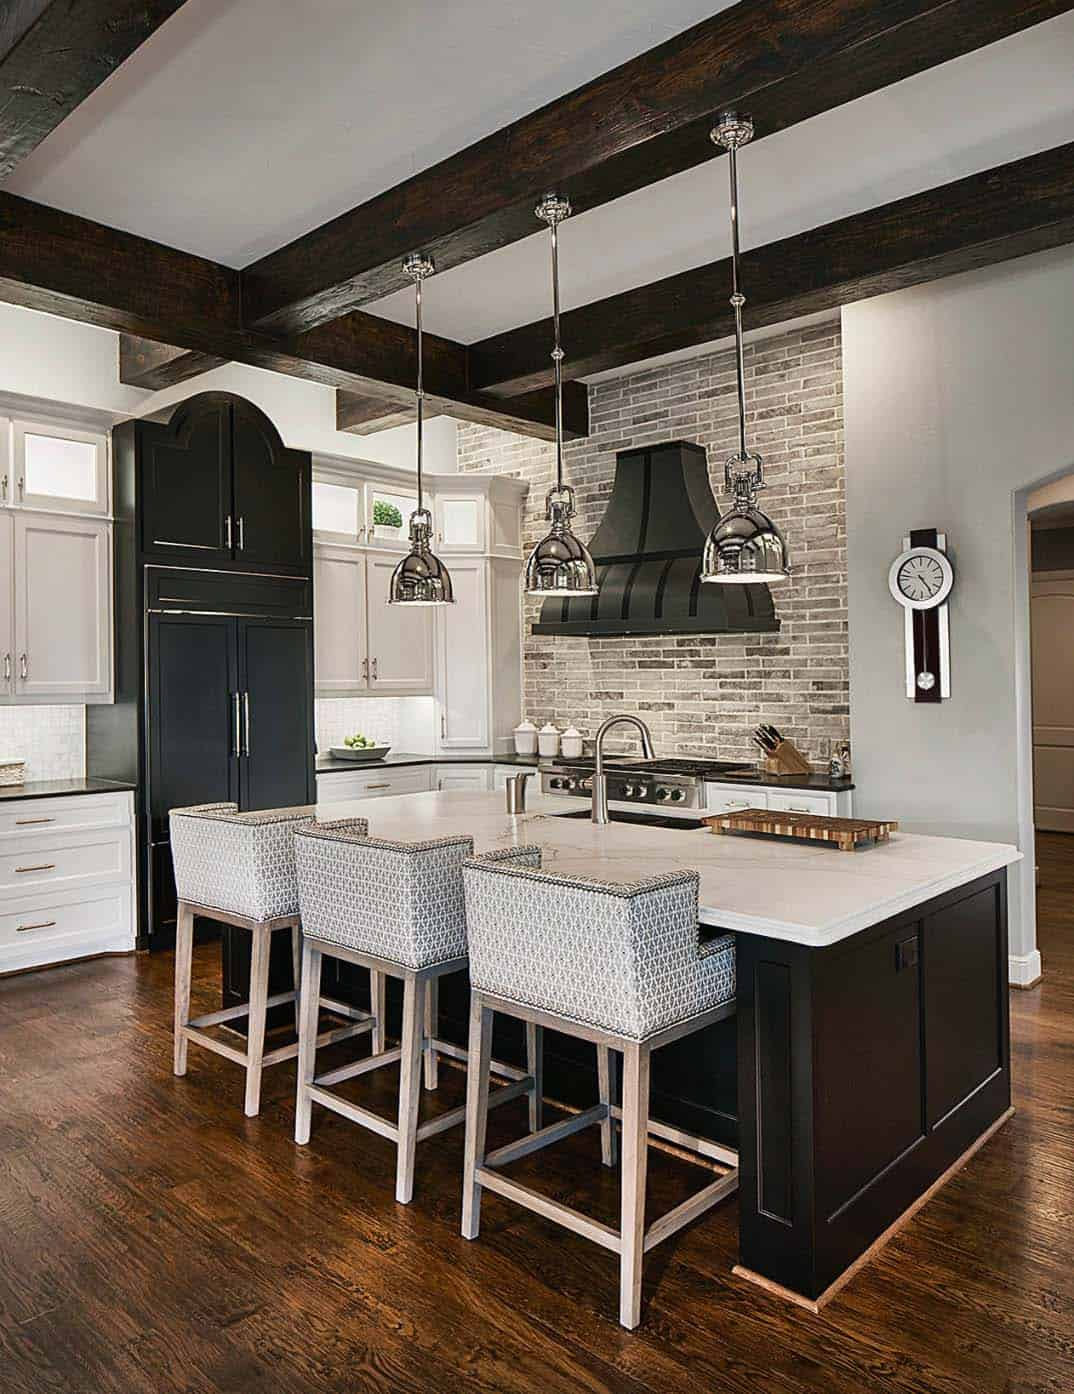 Tips For Kitchen Color Ideas: 25+ Absolutely Gorgeous Transitional Style Kitchen Ideas